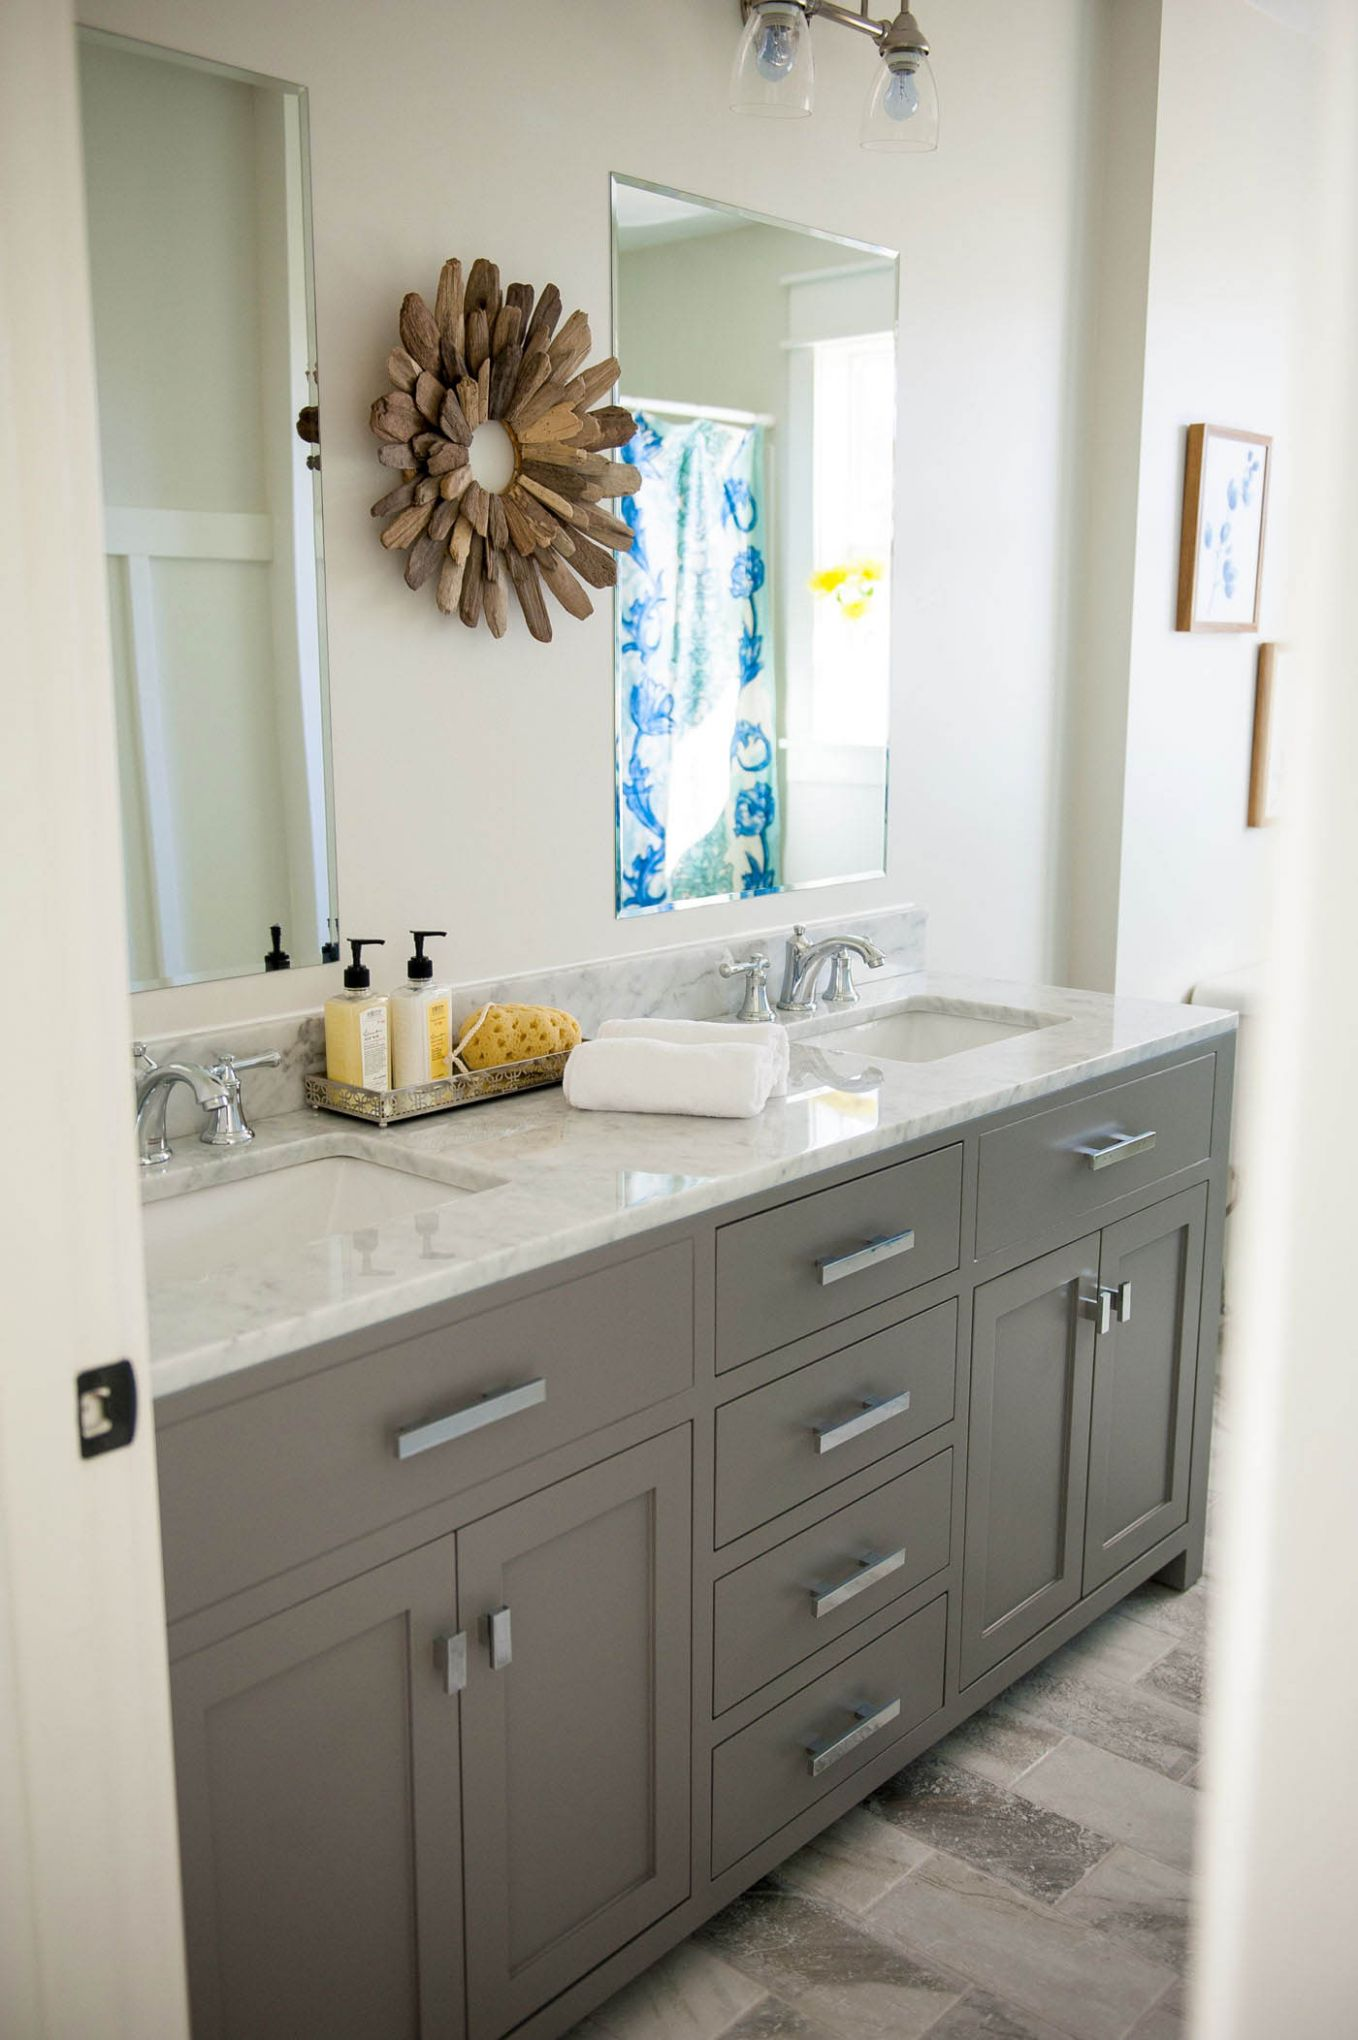 The Ultimate Guide to Buying a Bathroom Vanity | The Harper House